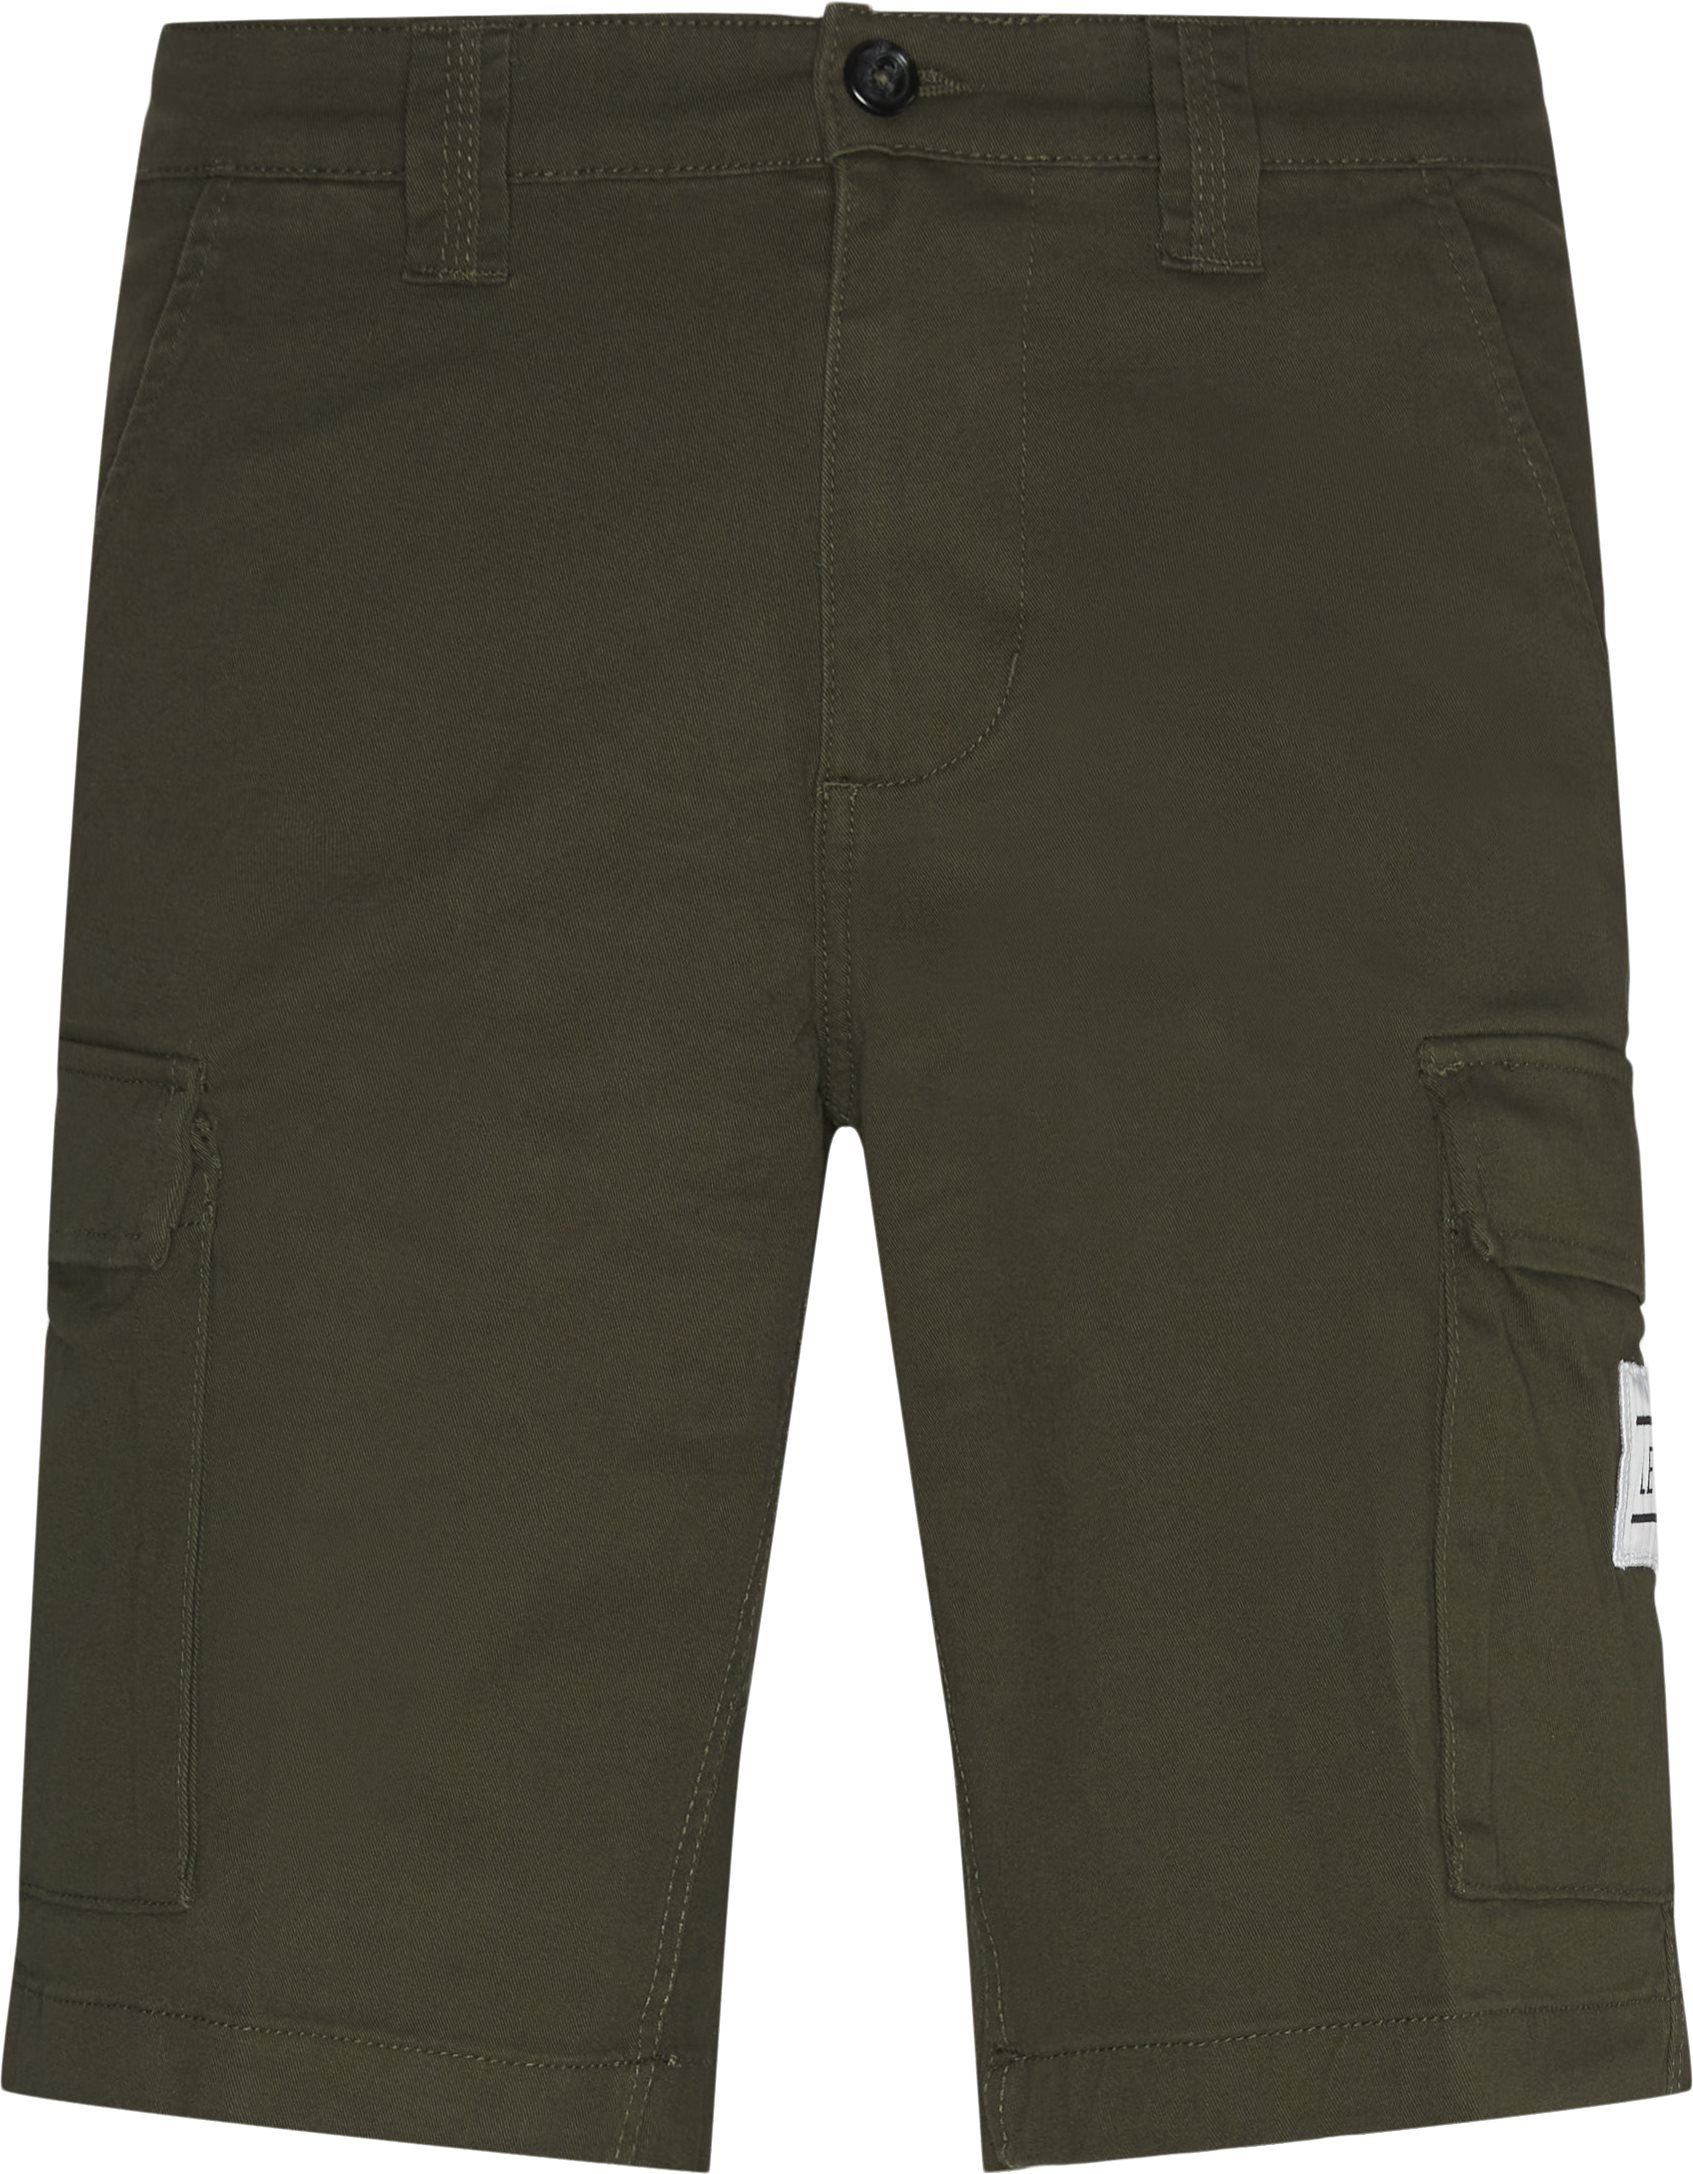 Cedric Shorts - Shorts - Loose fit - Army